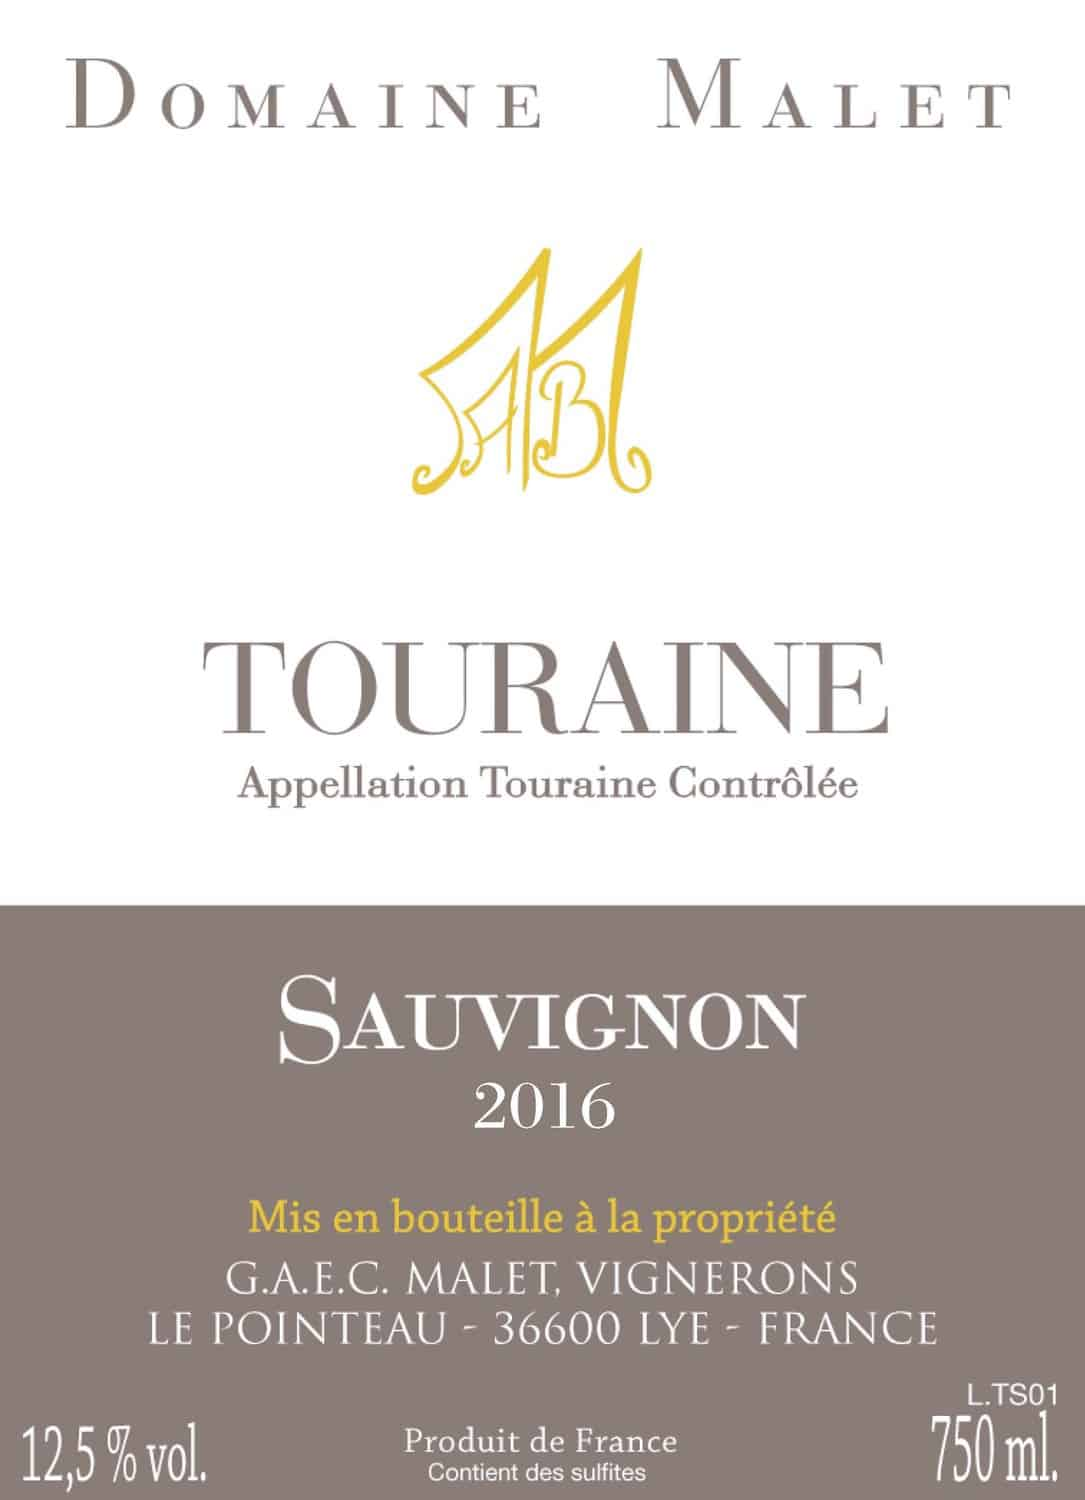 New Label Dom Malet Touraine SB